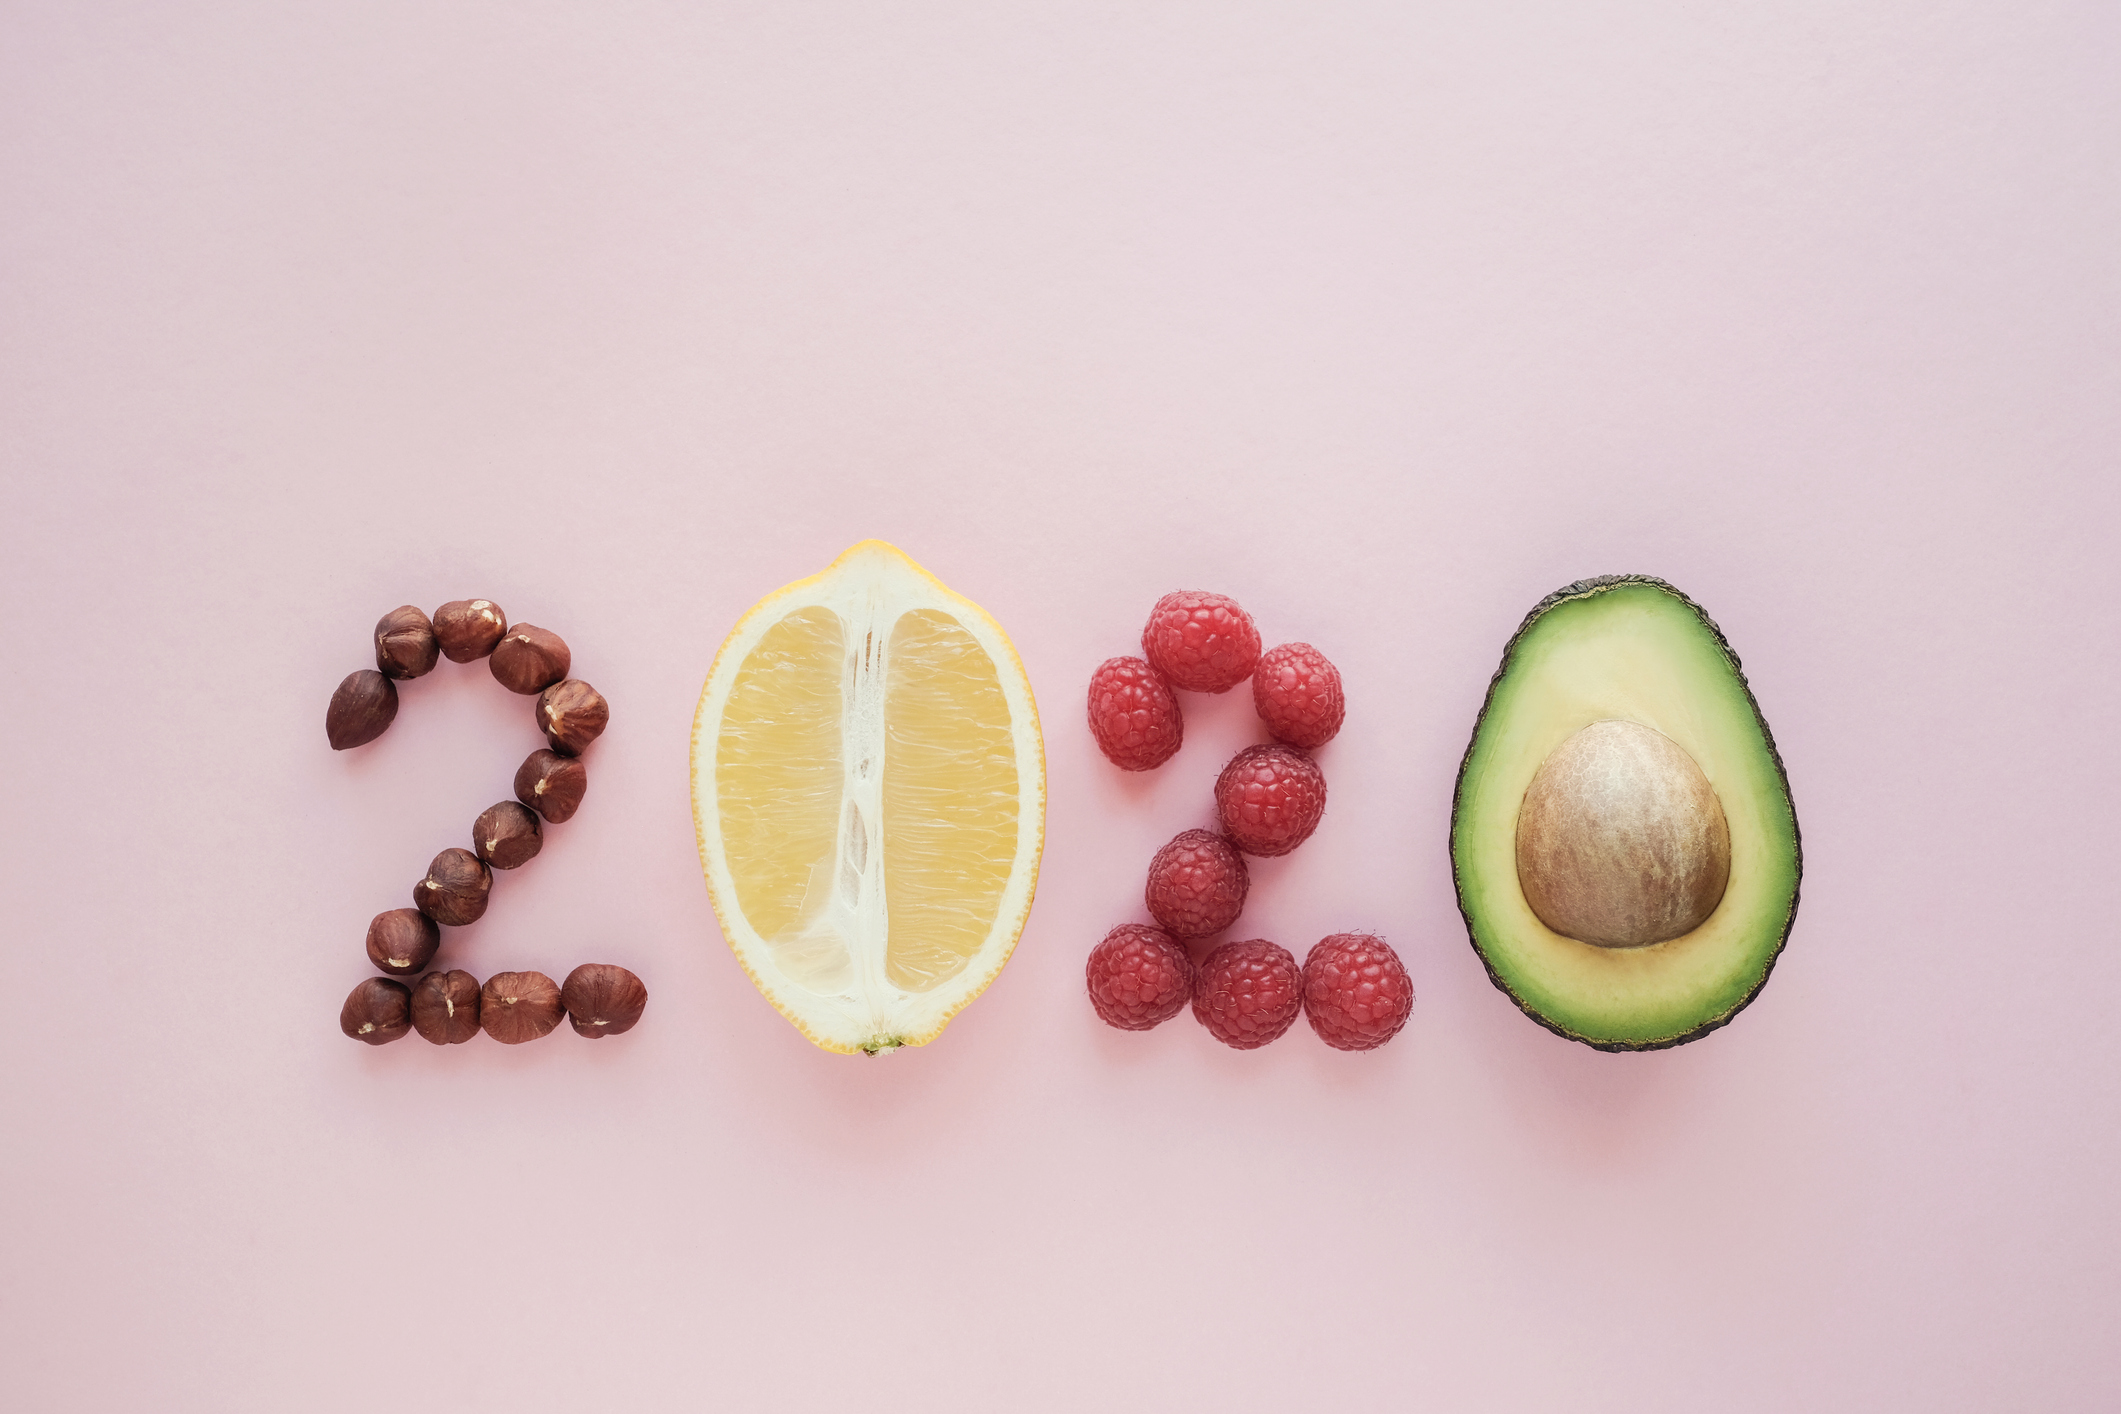 Things to consider before making health, nutrition goals this year.